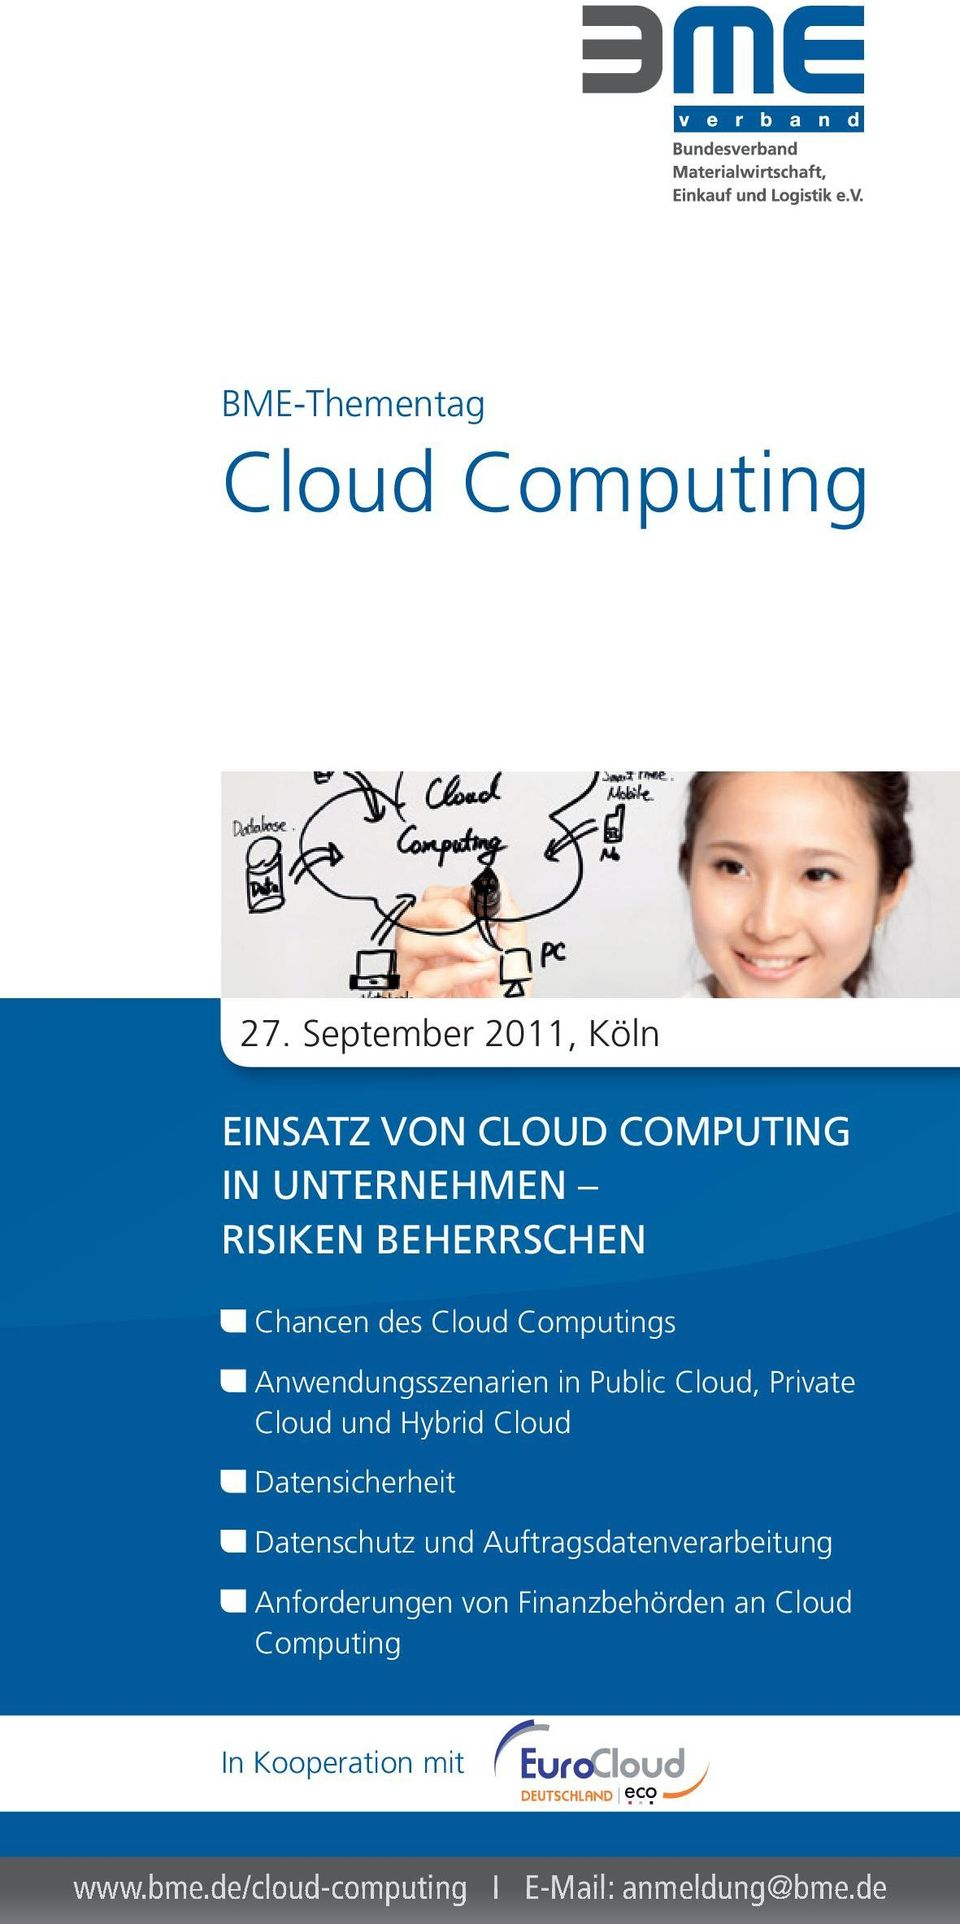 Cloud Computings Anwendungsszenarien in Public Cloud, Private Cloud und Hybrid Cloud